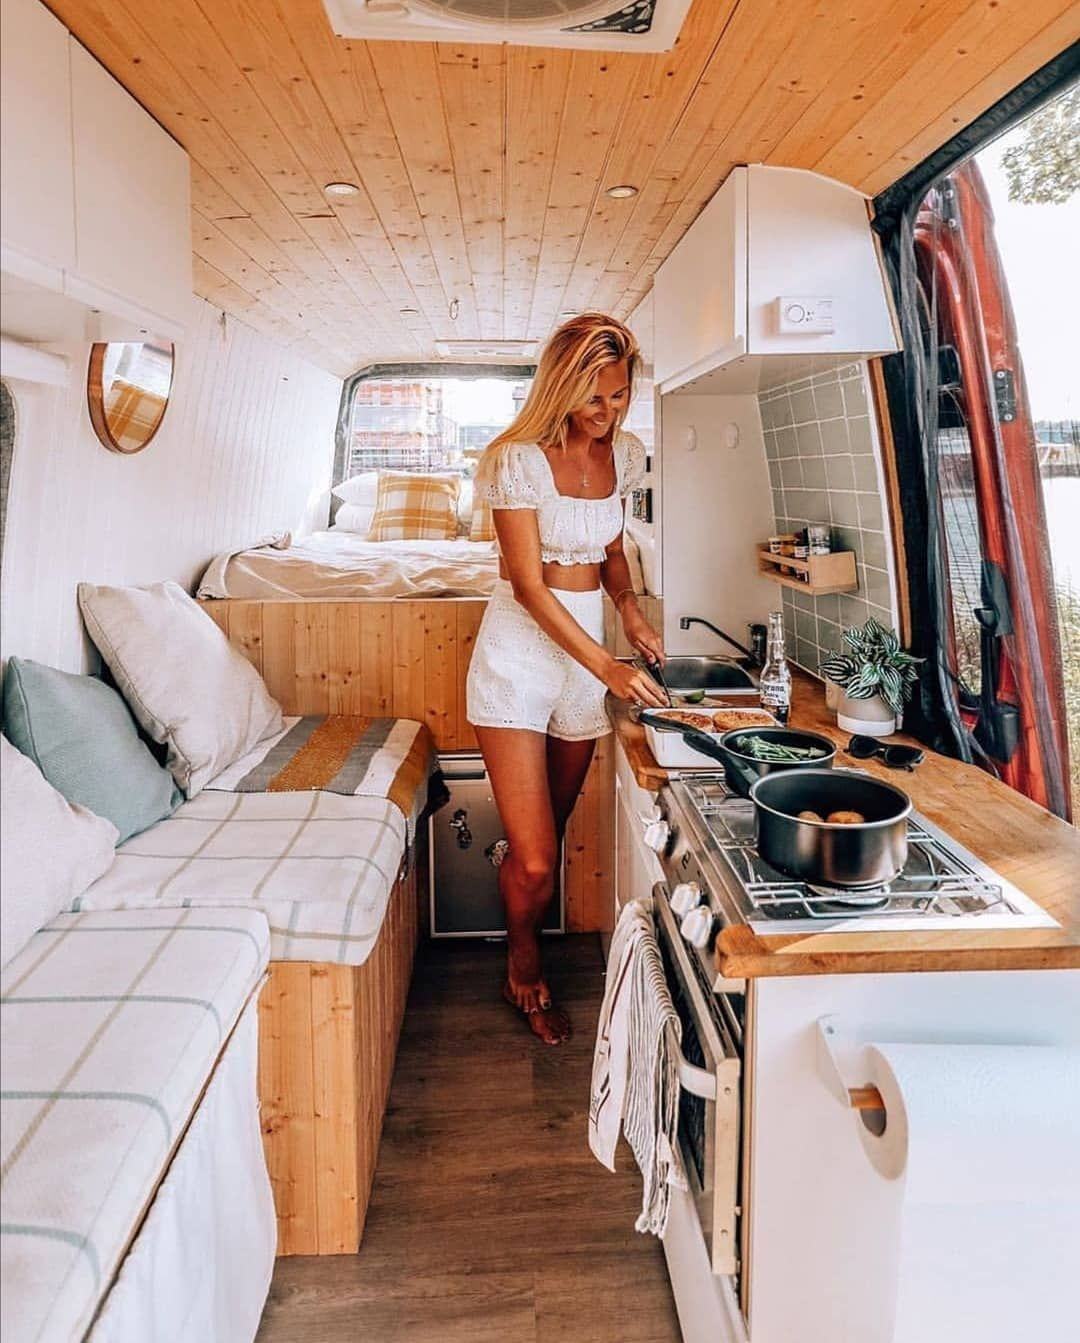 """Photo of Living Van Life on Instagram: """"📸 from @thewonderingdreamer Follow if you want to get inspired Living Van Life ❤️ Use #livingvanlife to get featured 🚌"""""""